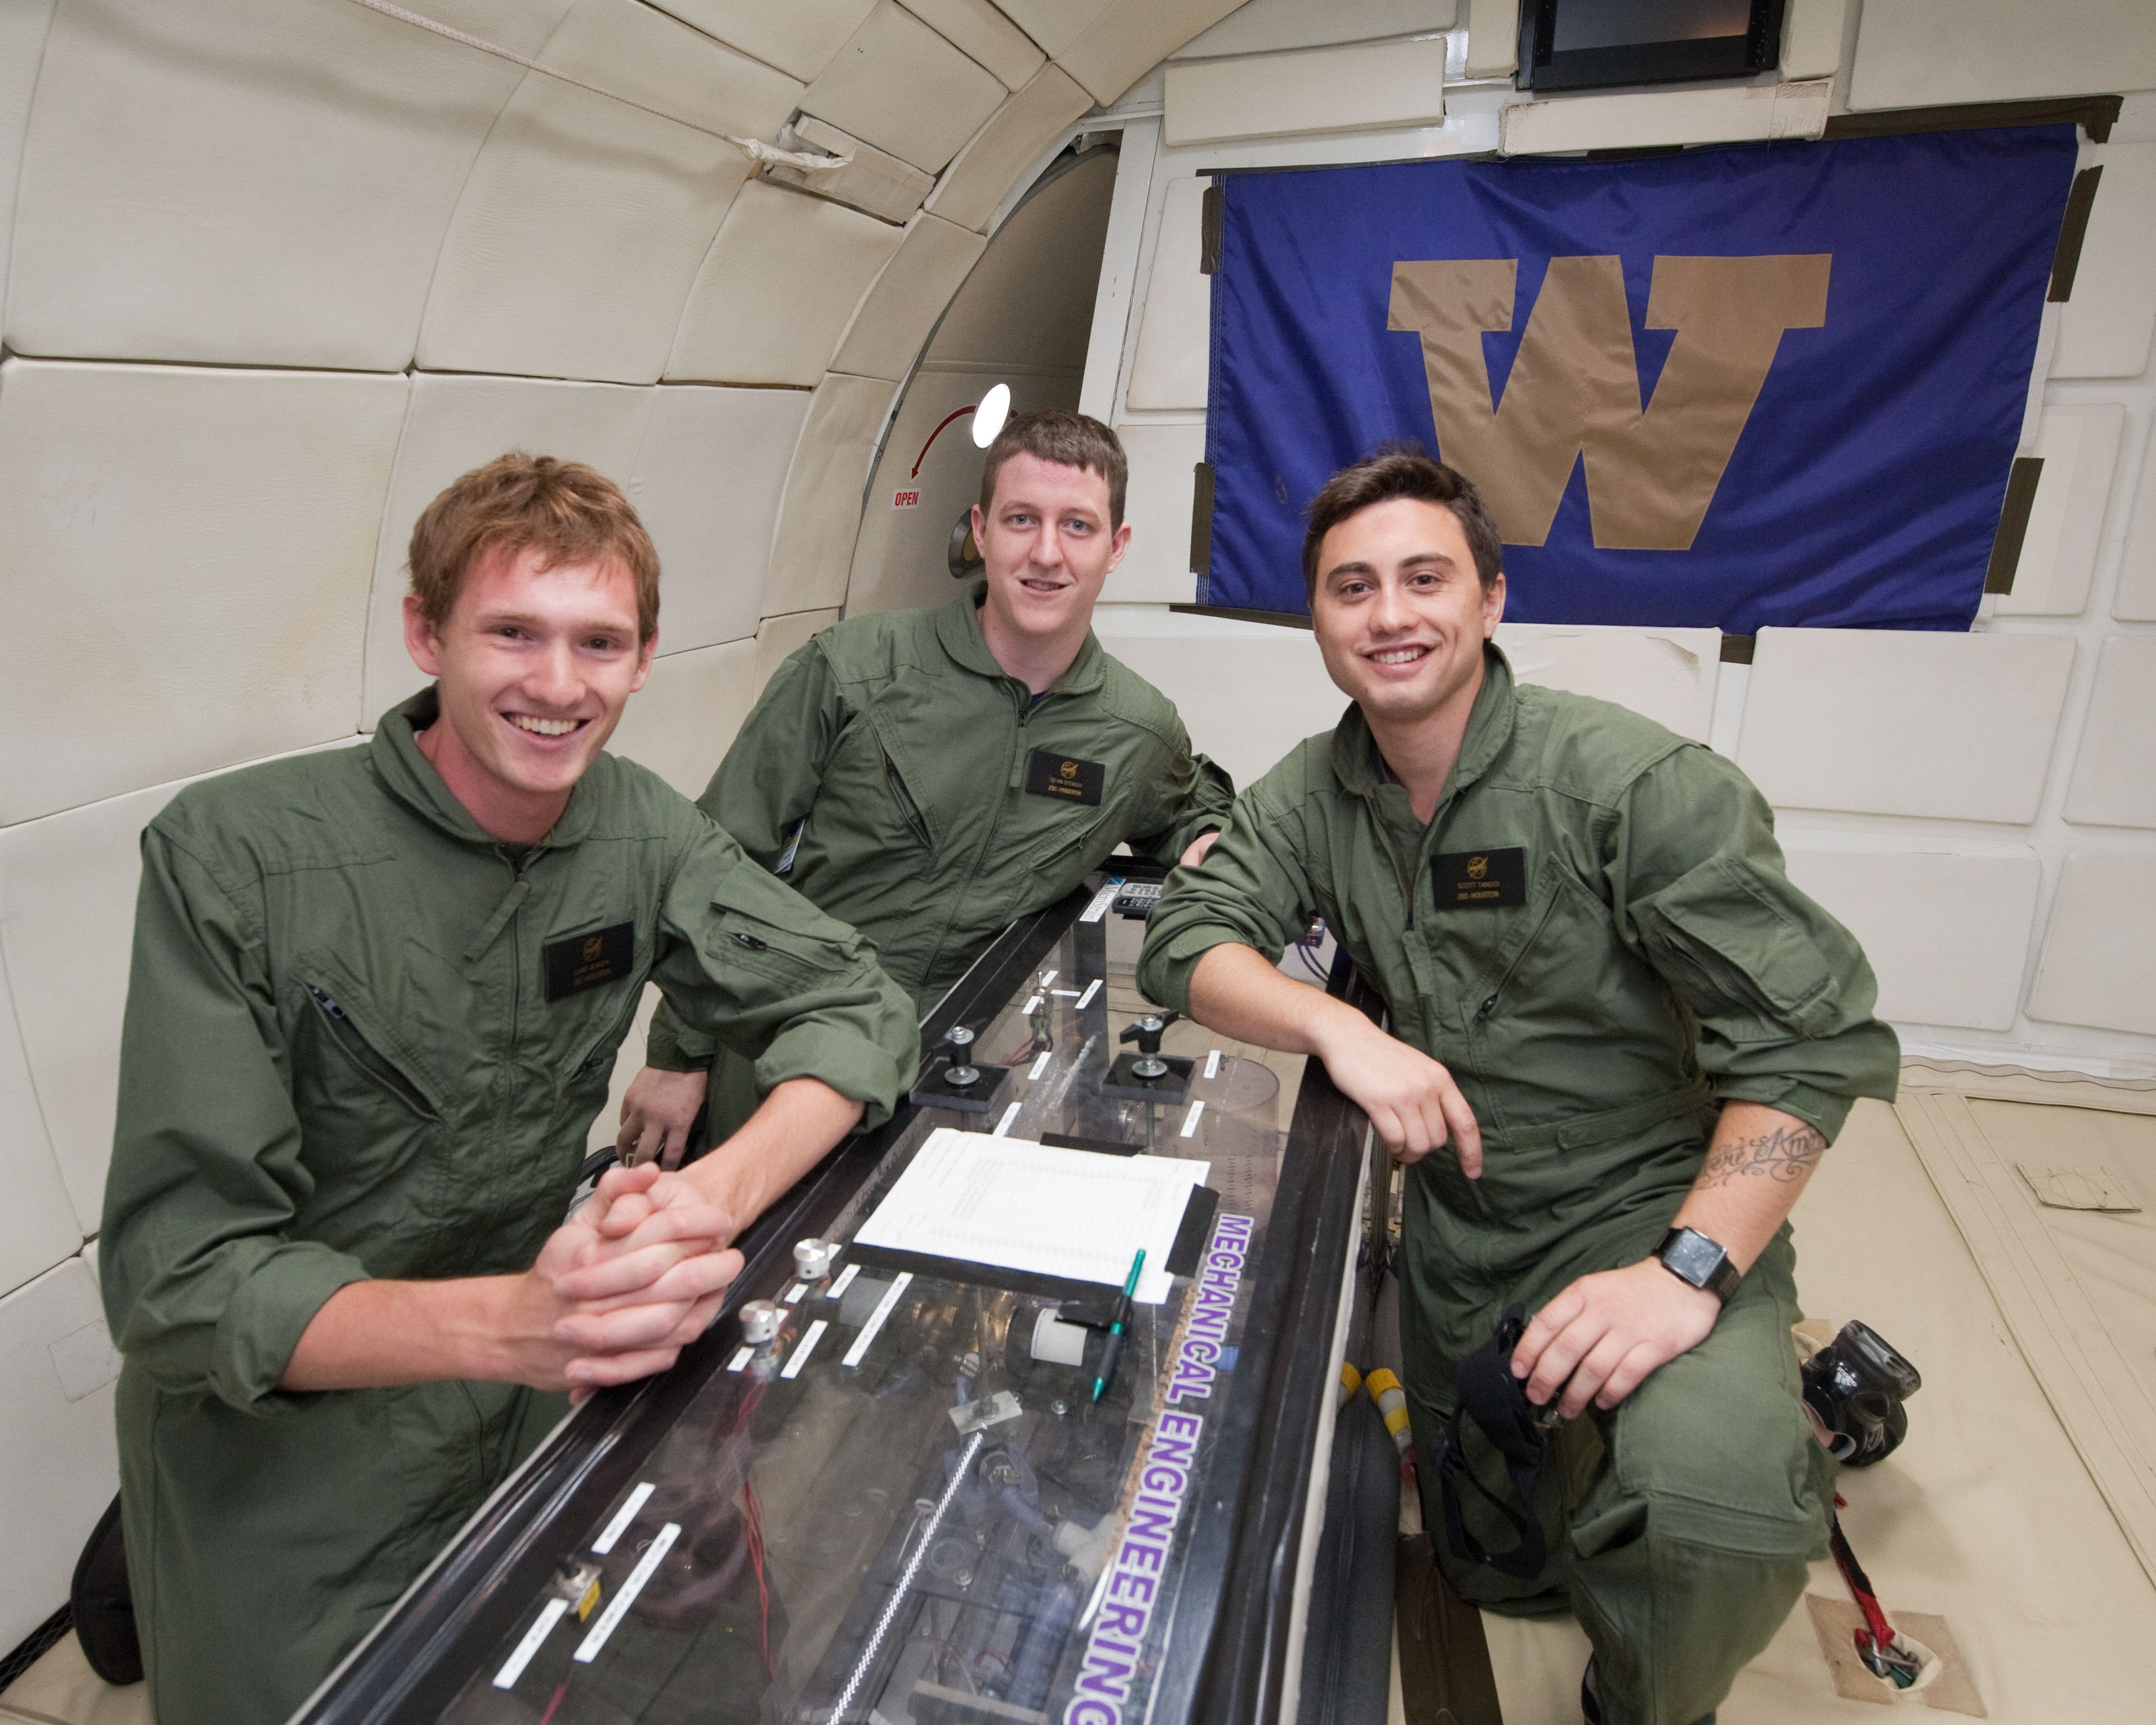 A crew of three students flew on each of the two experimental flights. The second UW crew included seniors Luke Jensen, Sean Stoker and Scott Tandoi.